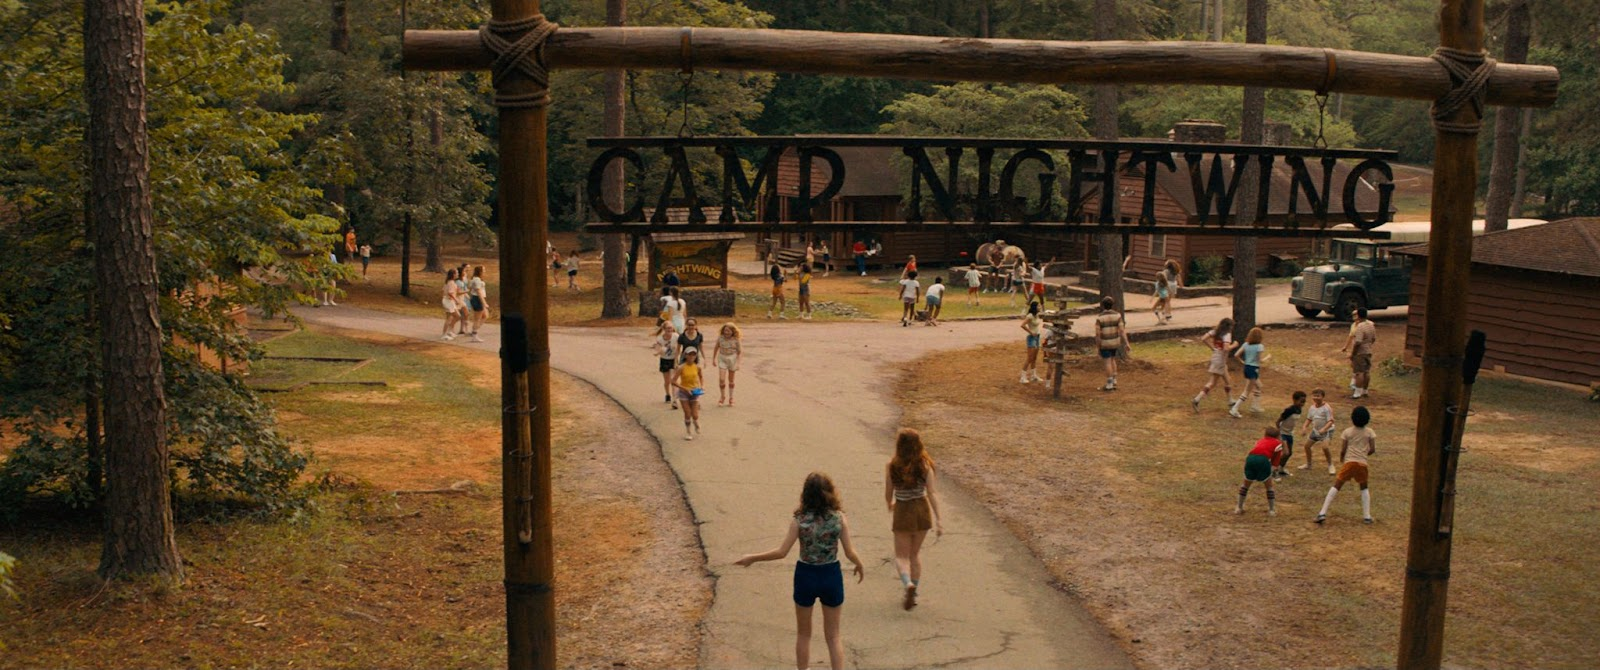 The Berman sisters arriving at Camp Nightwig. Courtesy of Netflix.